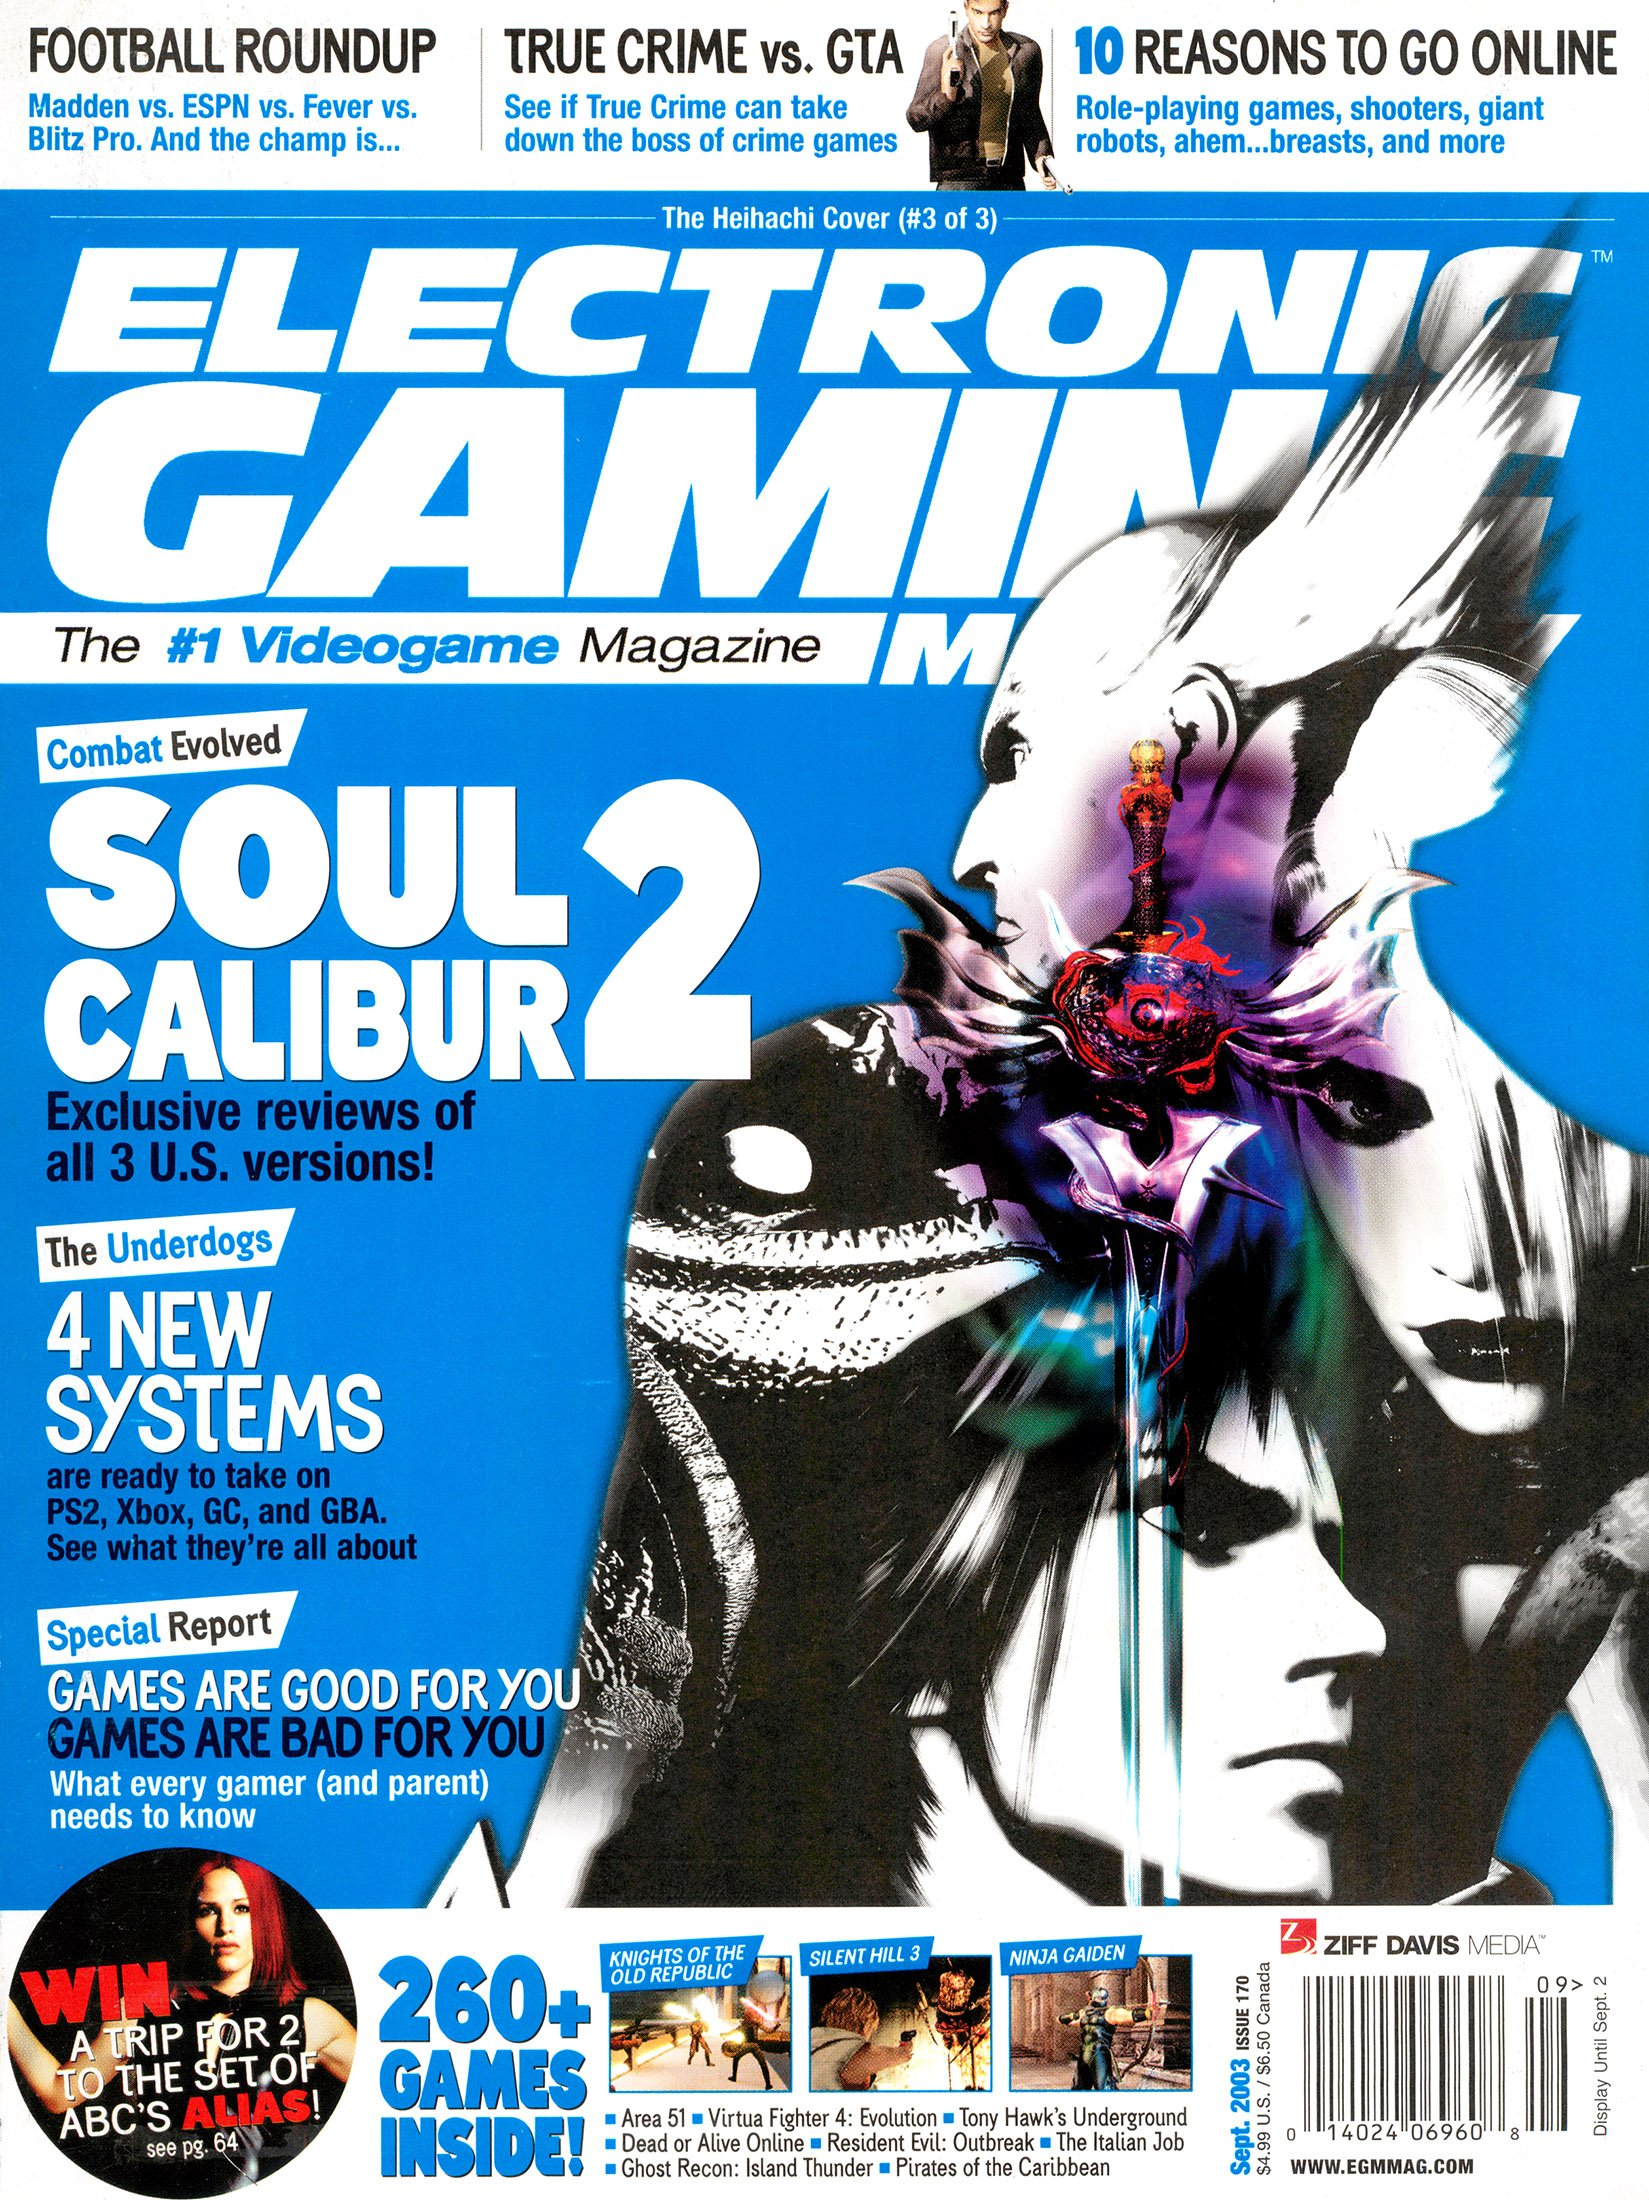 Electronic Gaming Monthly Issue 170 (September 2003) Cover 3 of 3